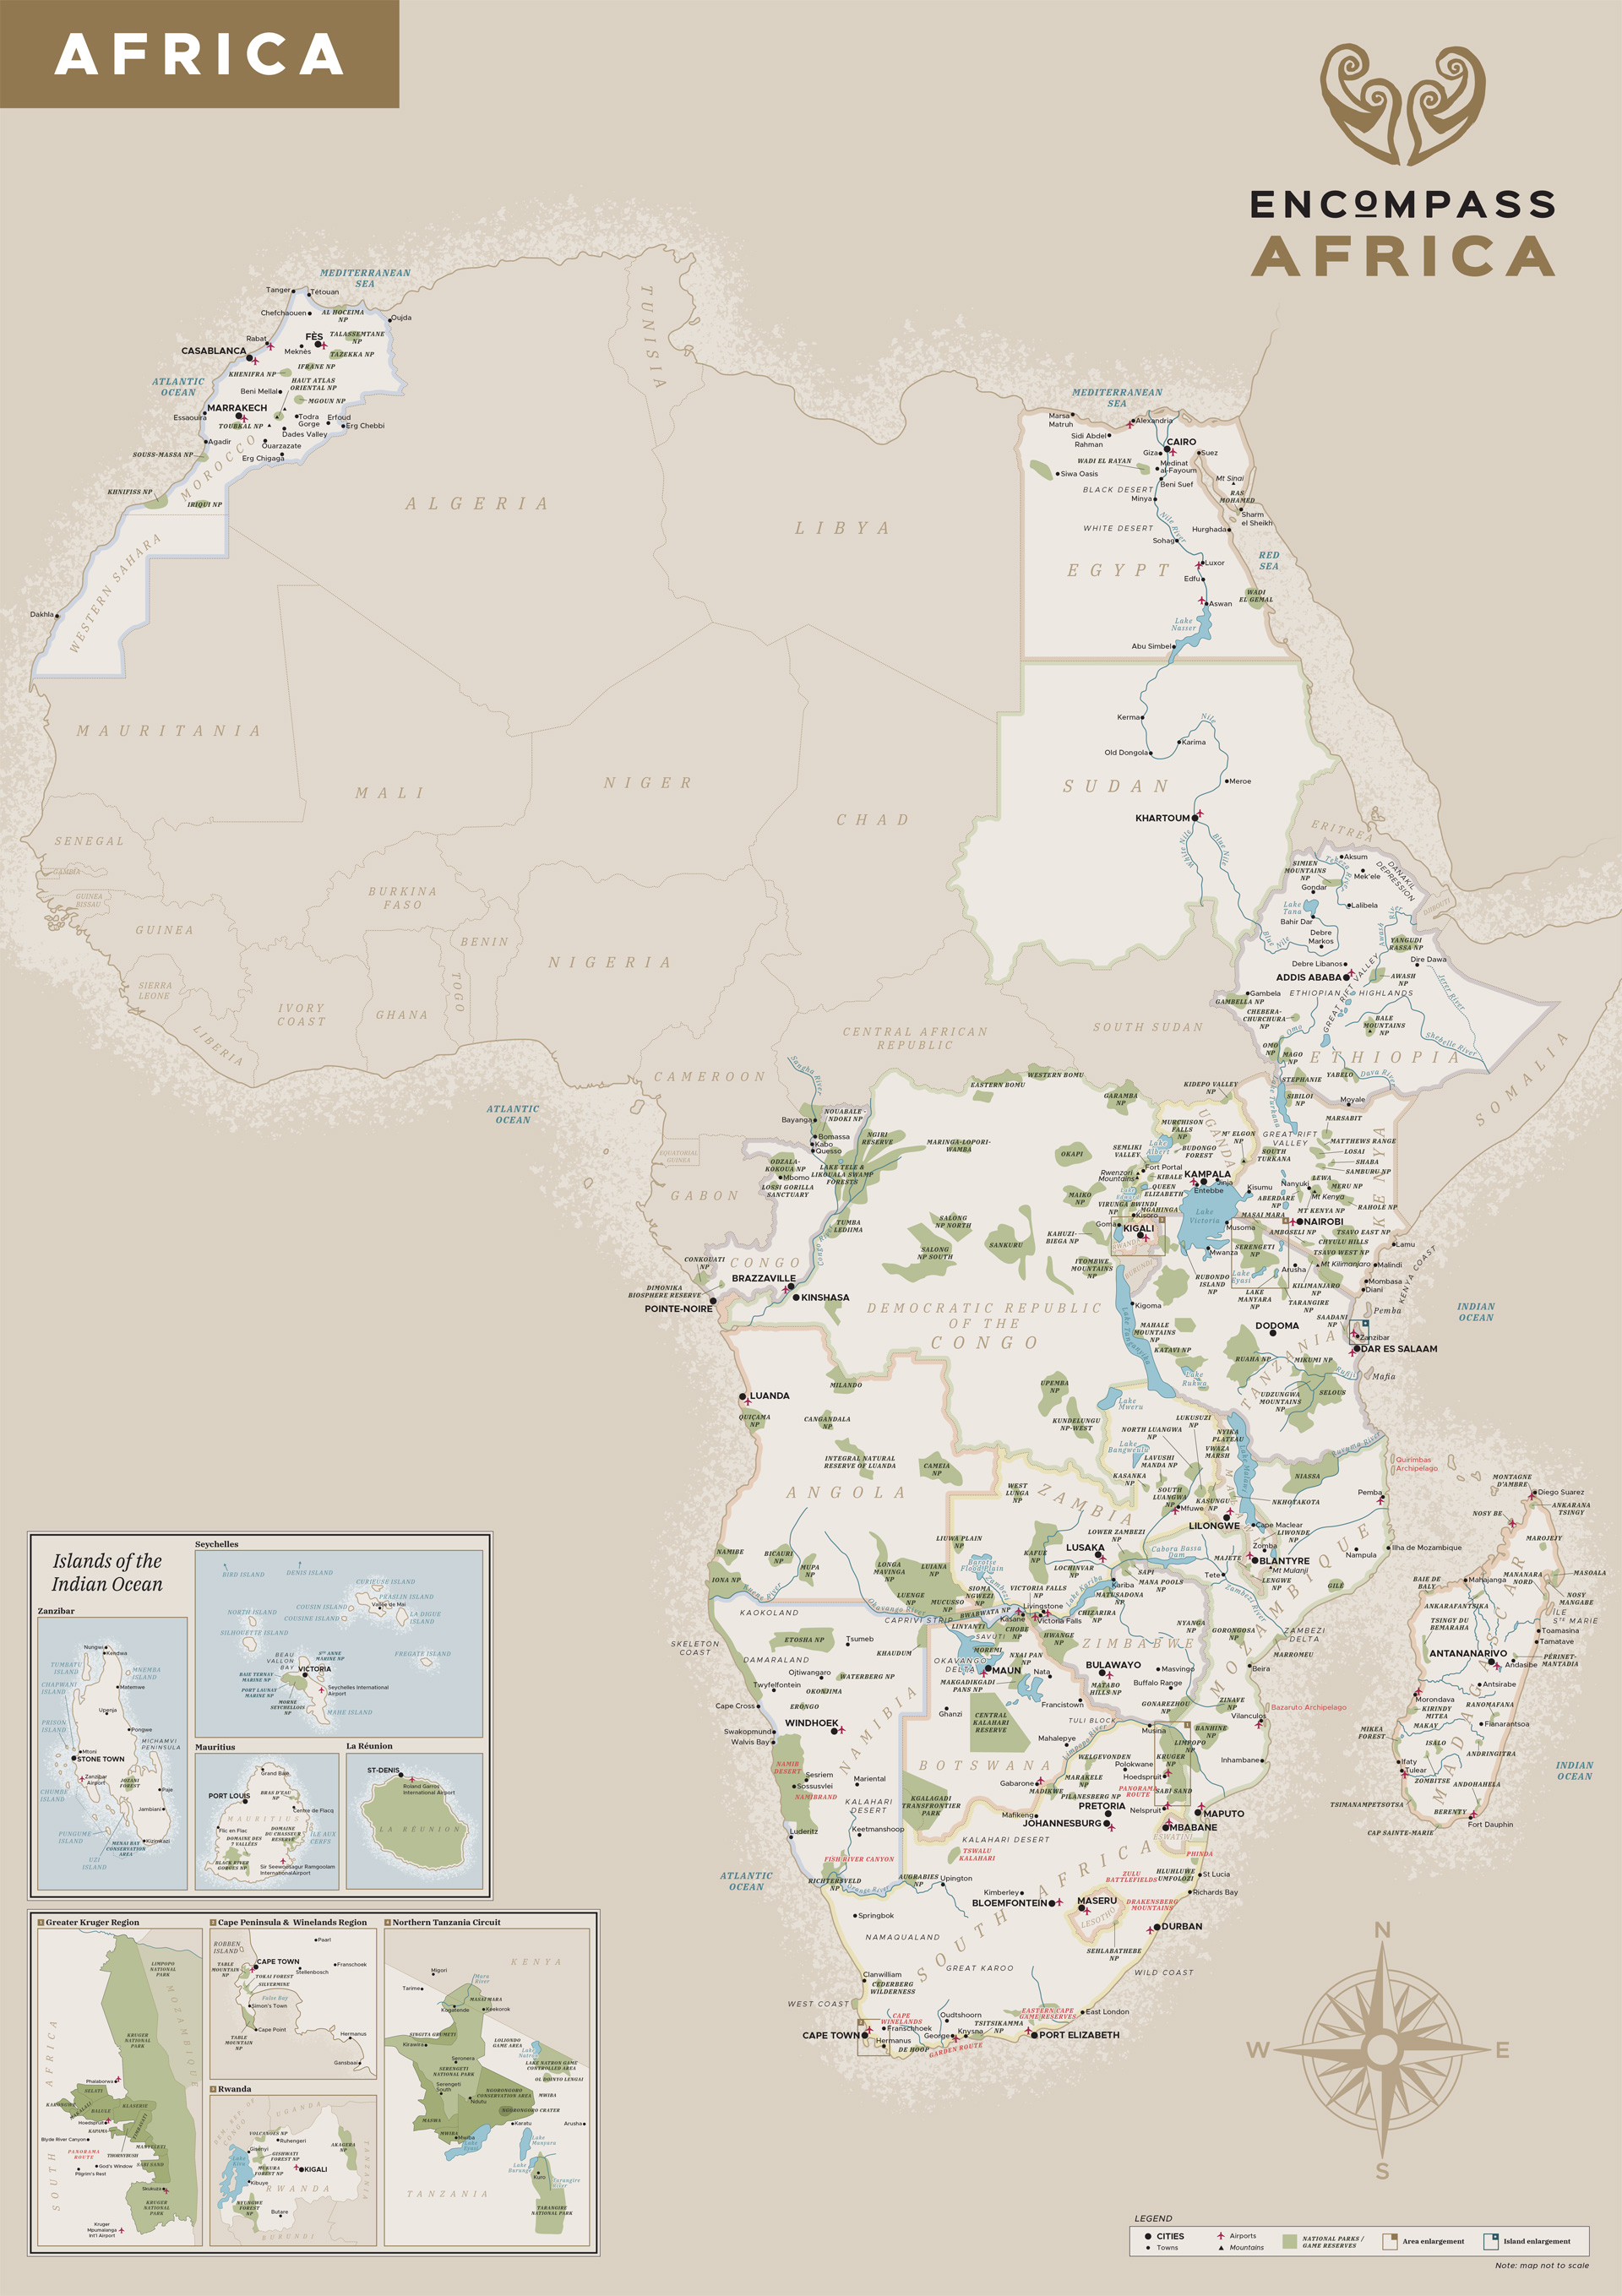 Encompass Africa map of the continent